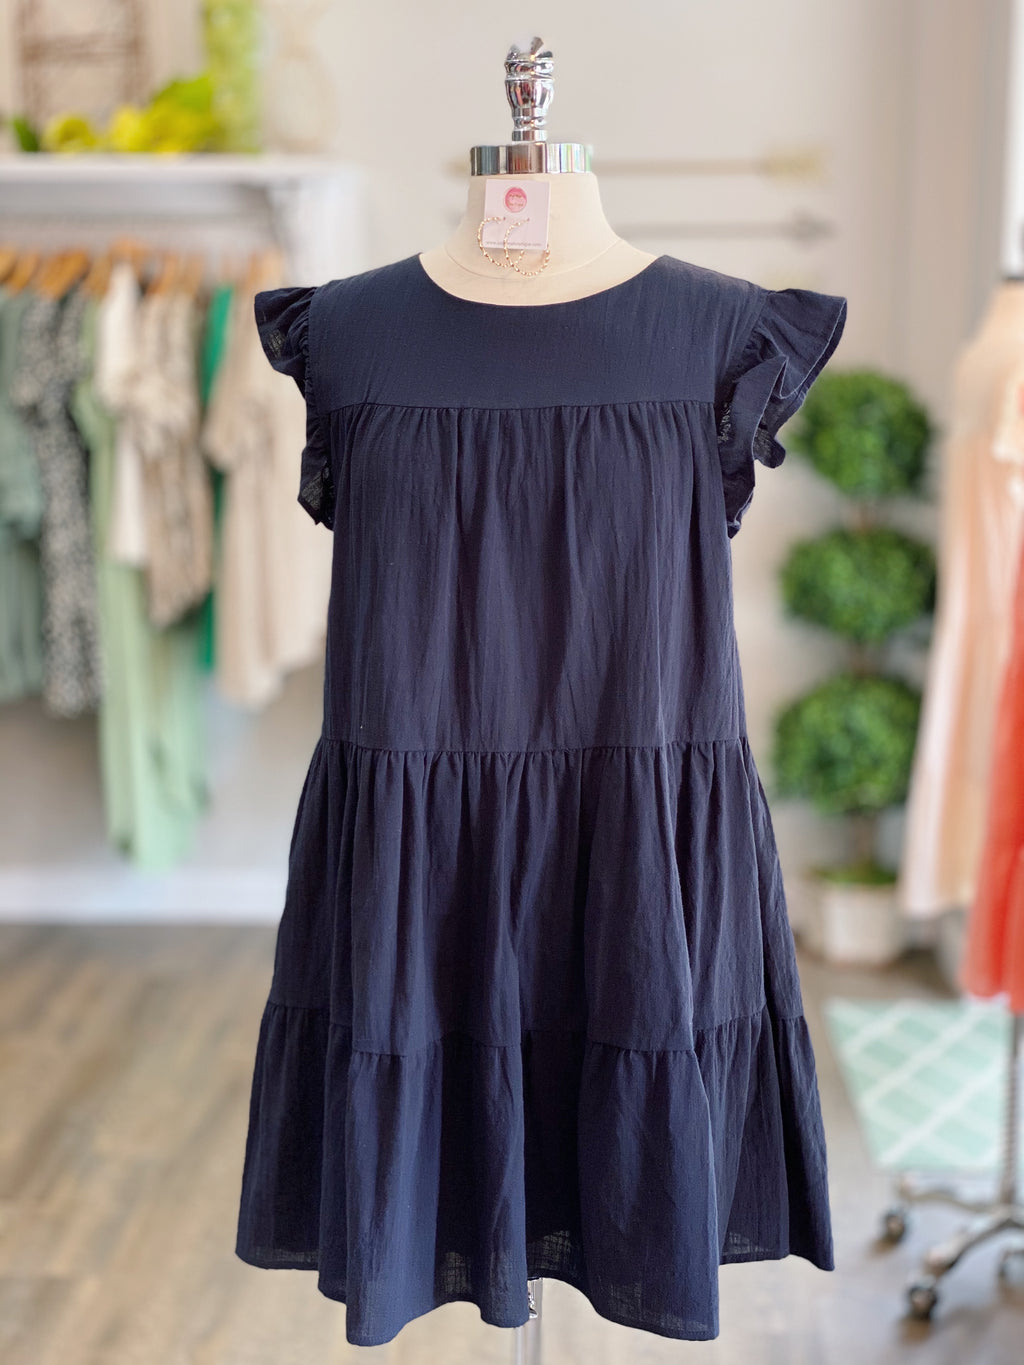 Dark Navy Ruffle Dress